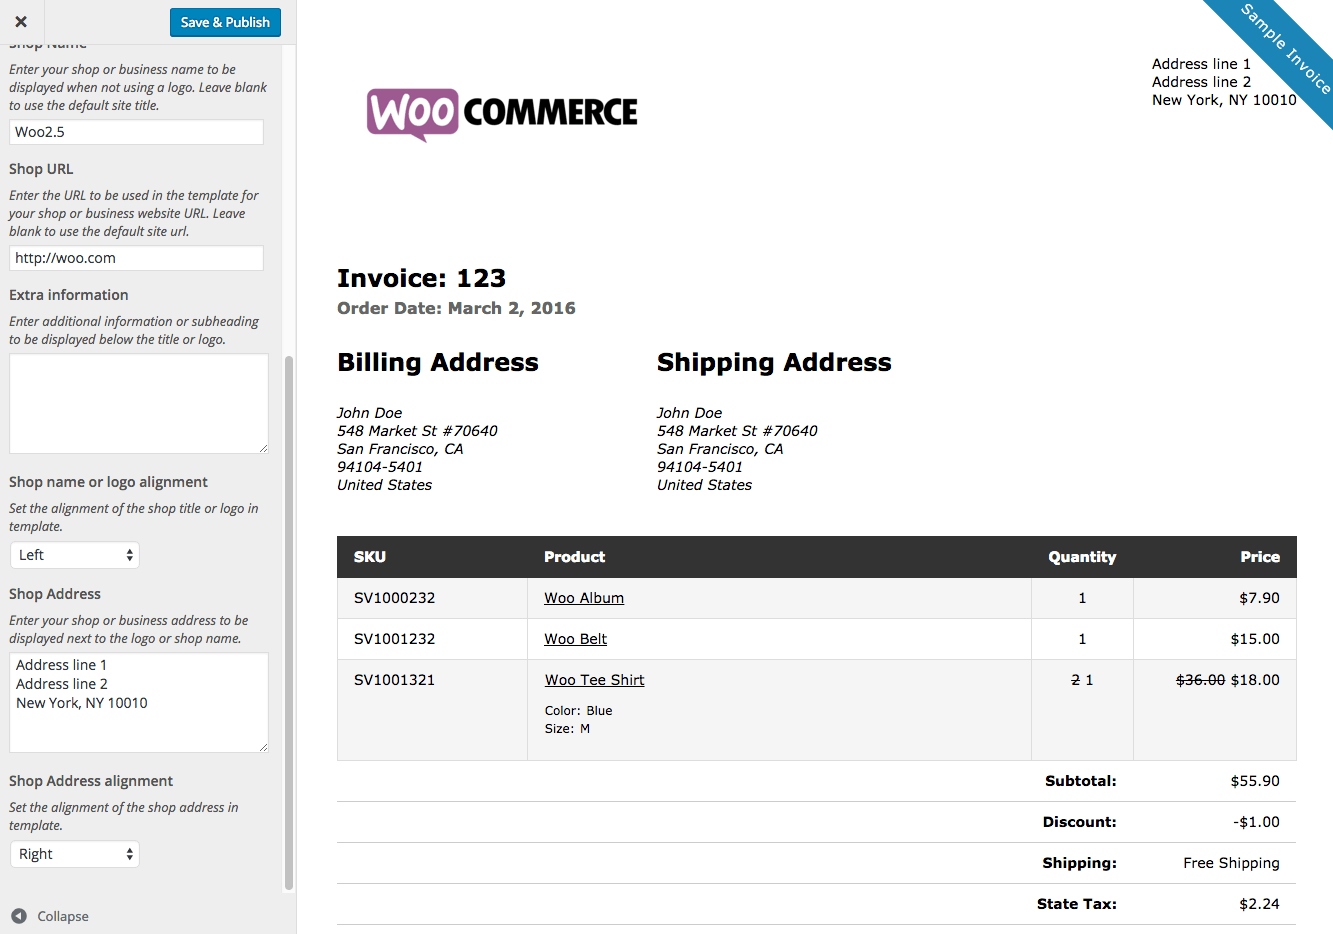 Pigbrotherus  Fascinating Woocommerce Print Invoices Amp Packing Lists  Woocommerce Docs With Outstanding Woocommerce Print Invoices  Packing Lists Customizer With Comely Quick Invoice Also Free Excel Invoice Template In Addition Email Invoice And Sap Invoice Table As Well As Invoice Icon Additionally Invoicing Software For Mac From Docswoocommercecom With Pigbrotherus  Outstanding Woocommerce Print Invoices Amp Packing Lists  Woocommerce Docs With Comely Woocommerce Print Invoices  Packing Lists Customizer And Fascinating Quick Invoice Also Free Excel Invoice Template In Addition Email Invoice From Docswoocommercecom